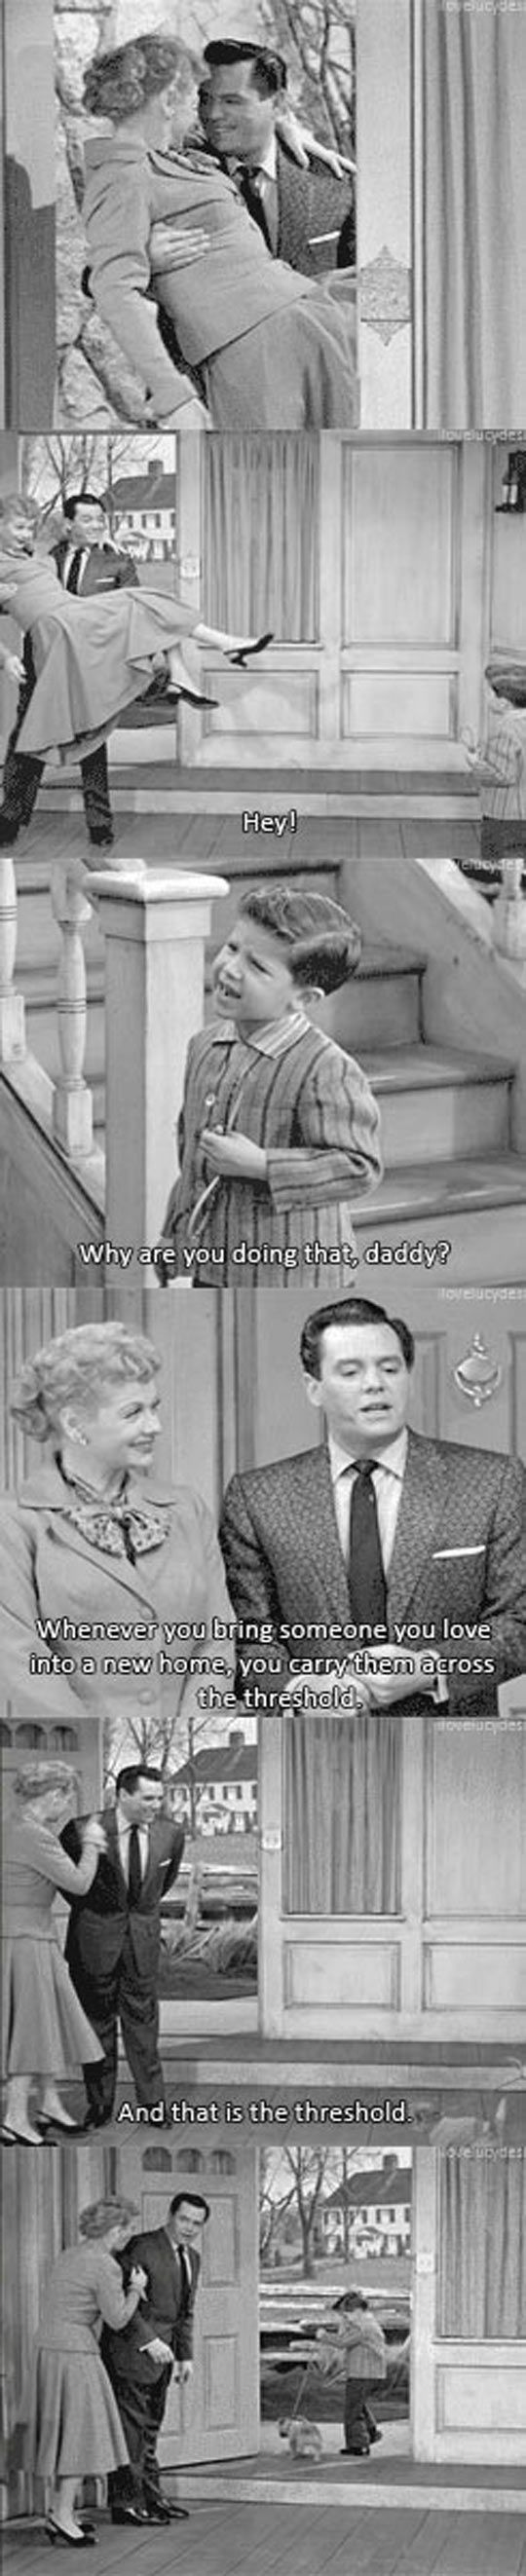 I Love Lucy  // funny pictures - funny photos - funny images - funny pics - funny quotes - #lol #humor #funnypictures